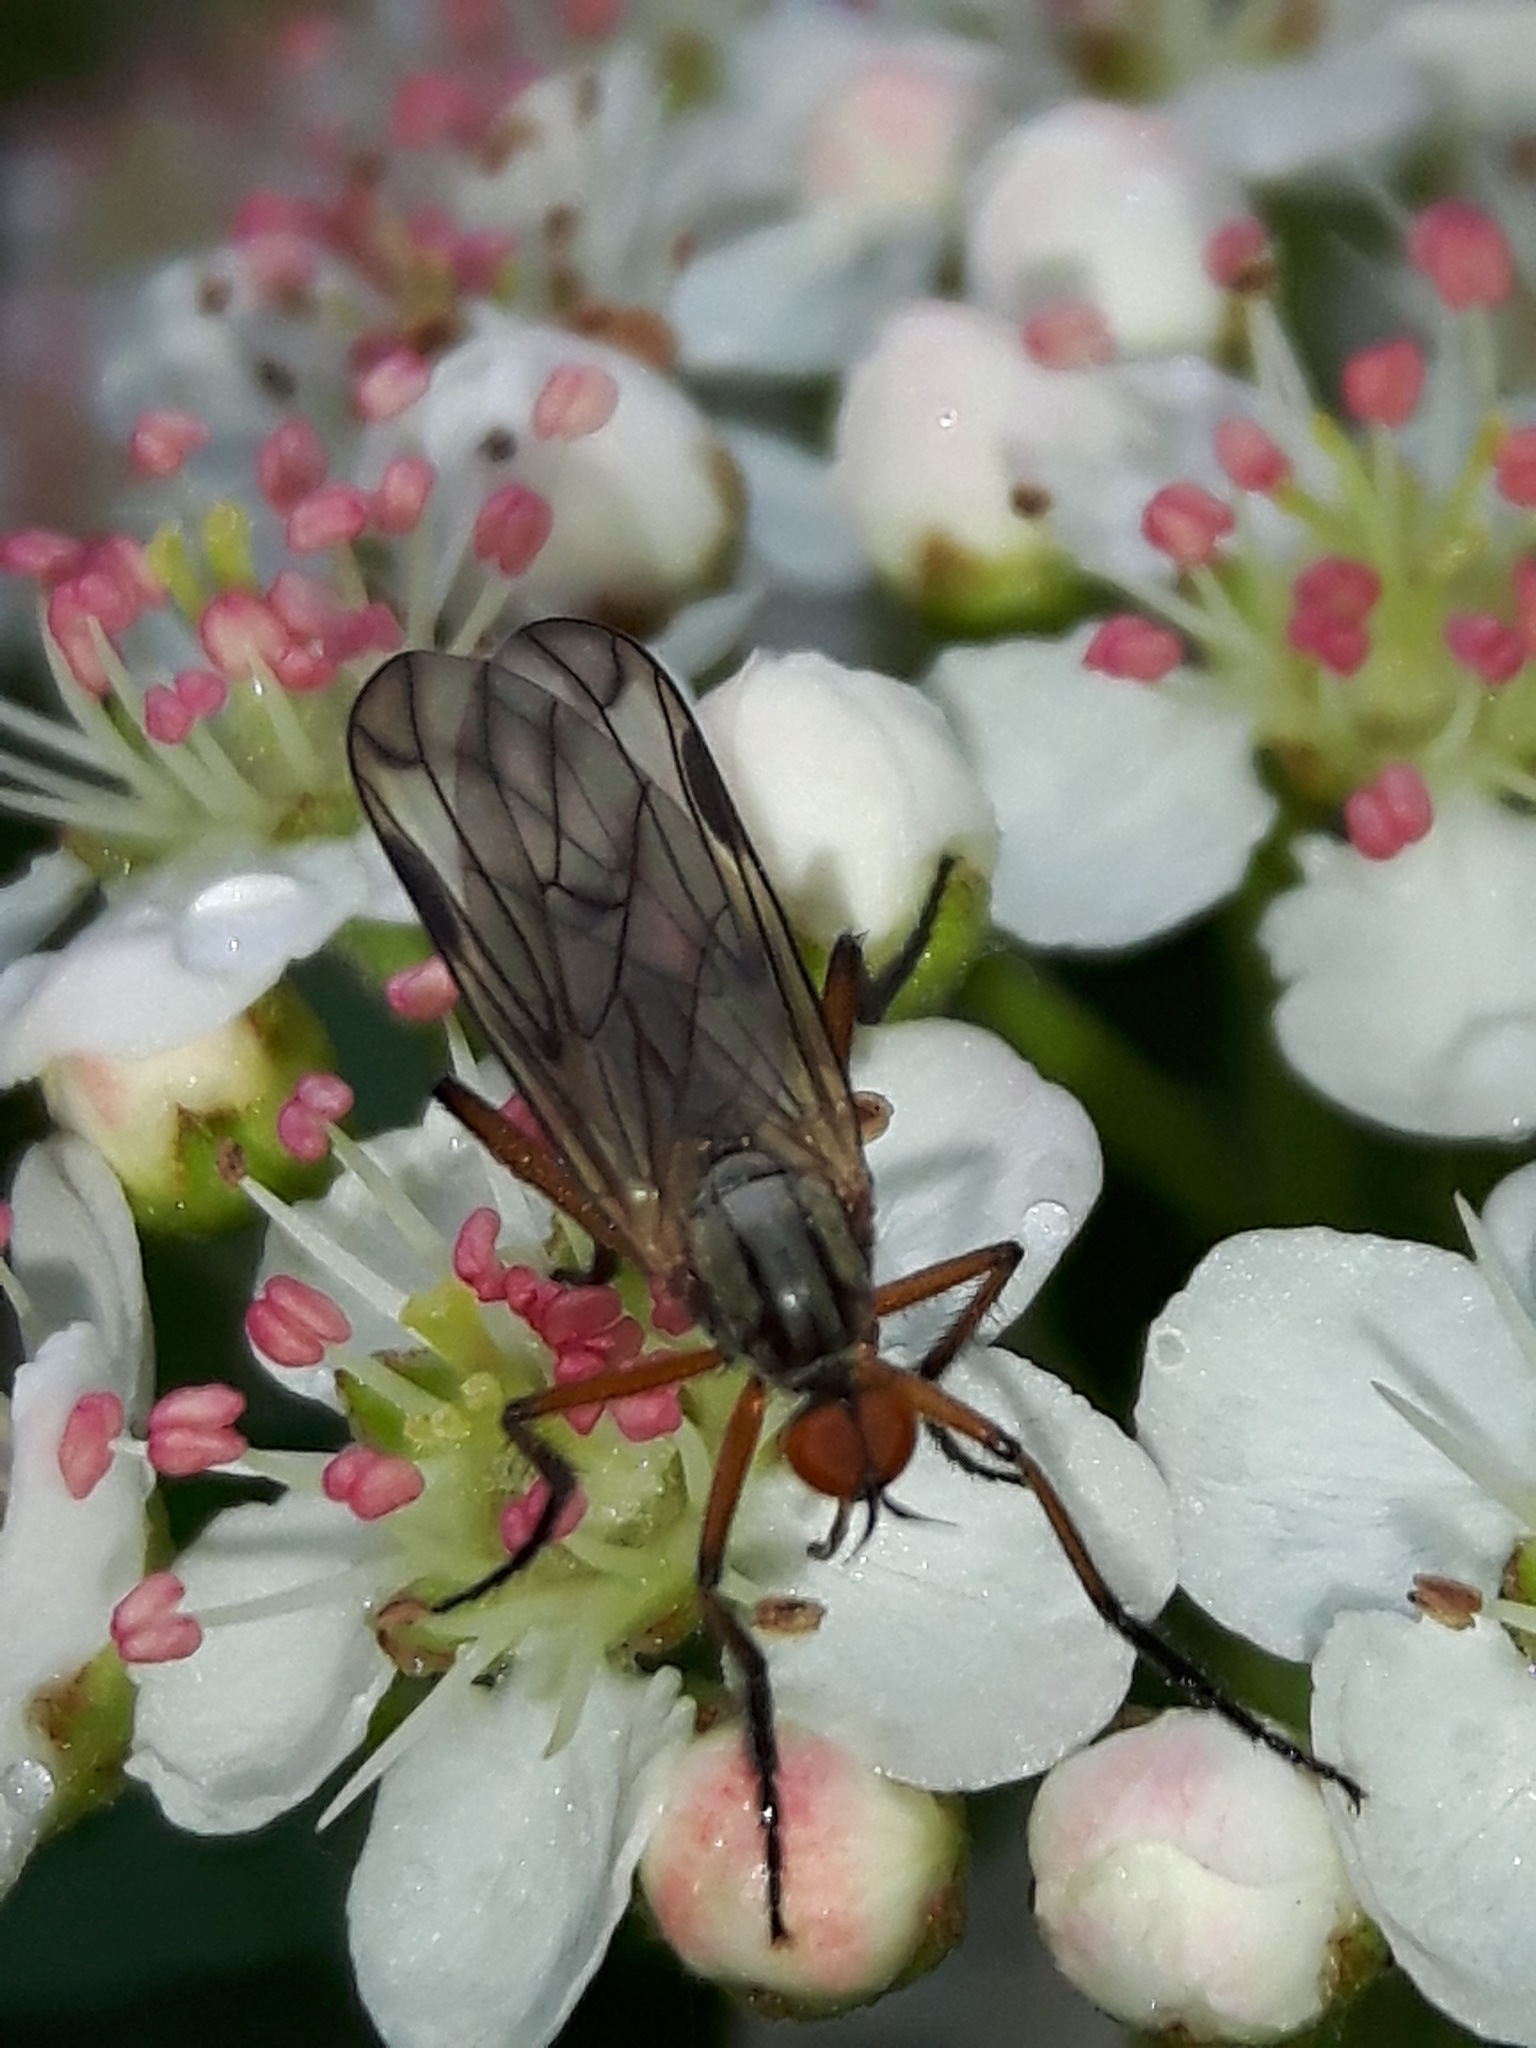 A fly on aronia flowers by Mevludin_Hasanovic